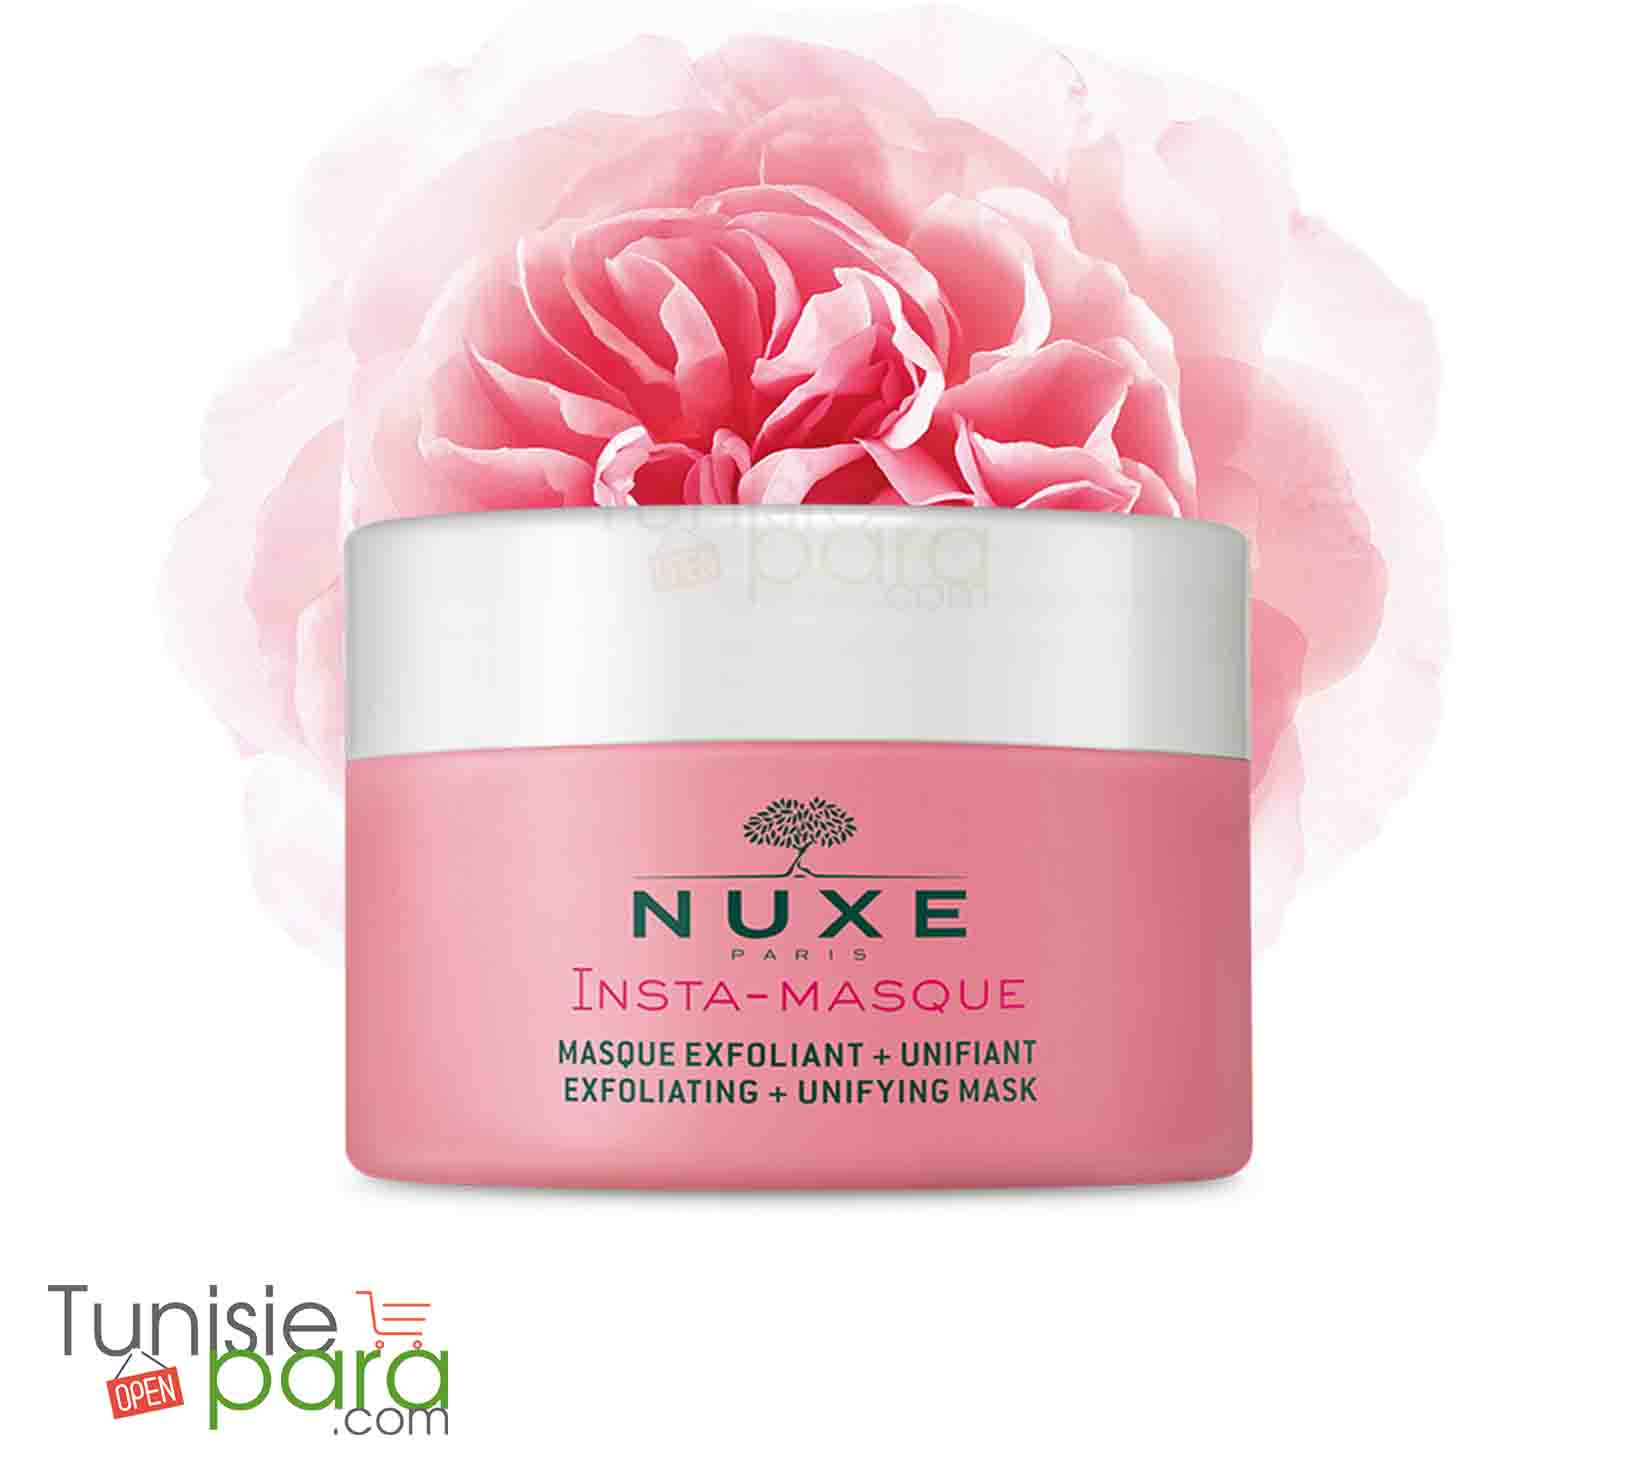 Nuxe Insta-Masque Exfoliant + Unifiant 50ml